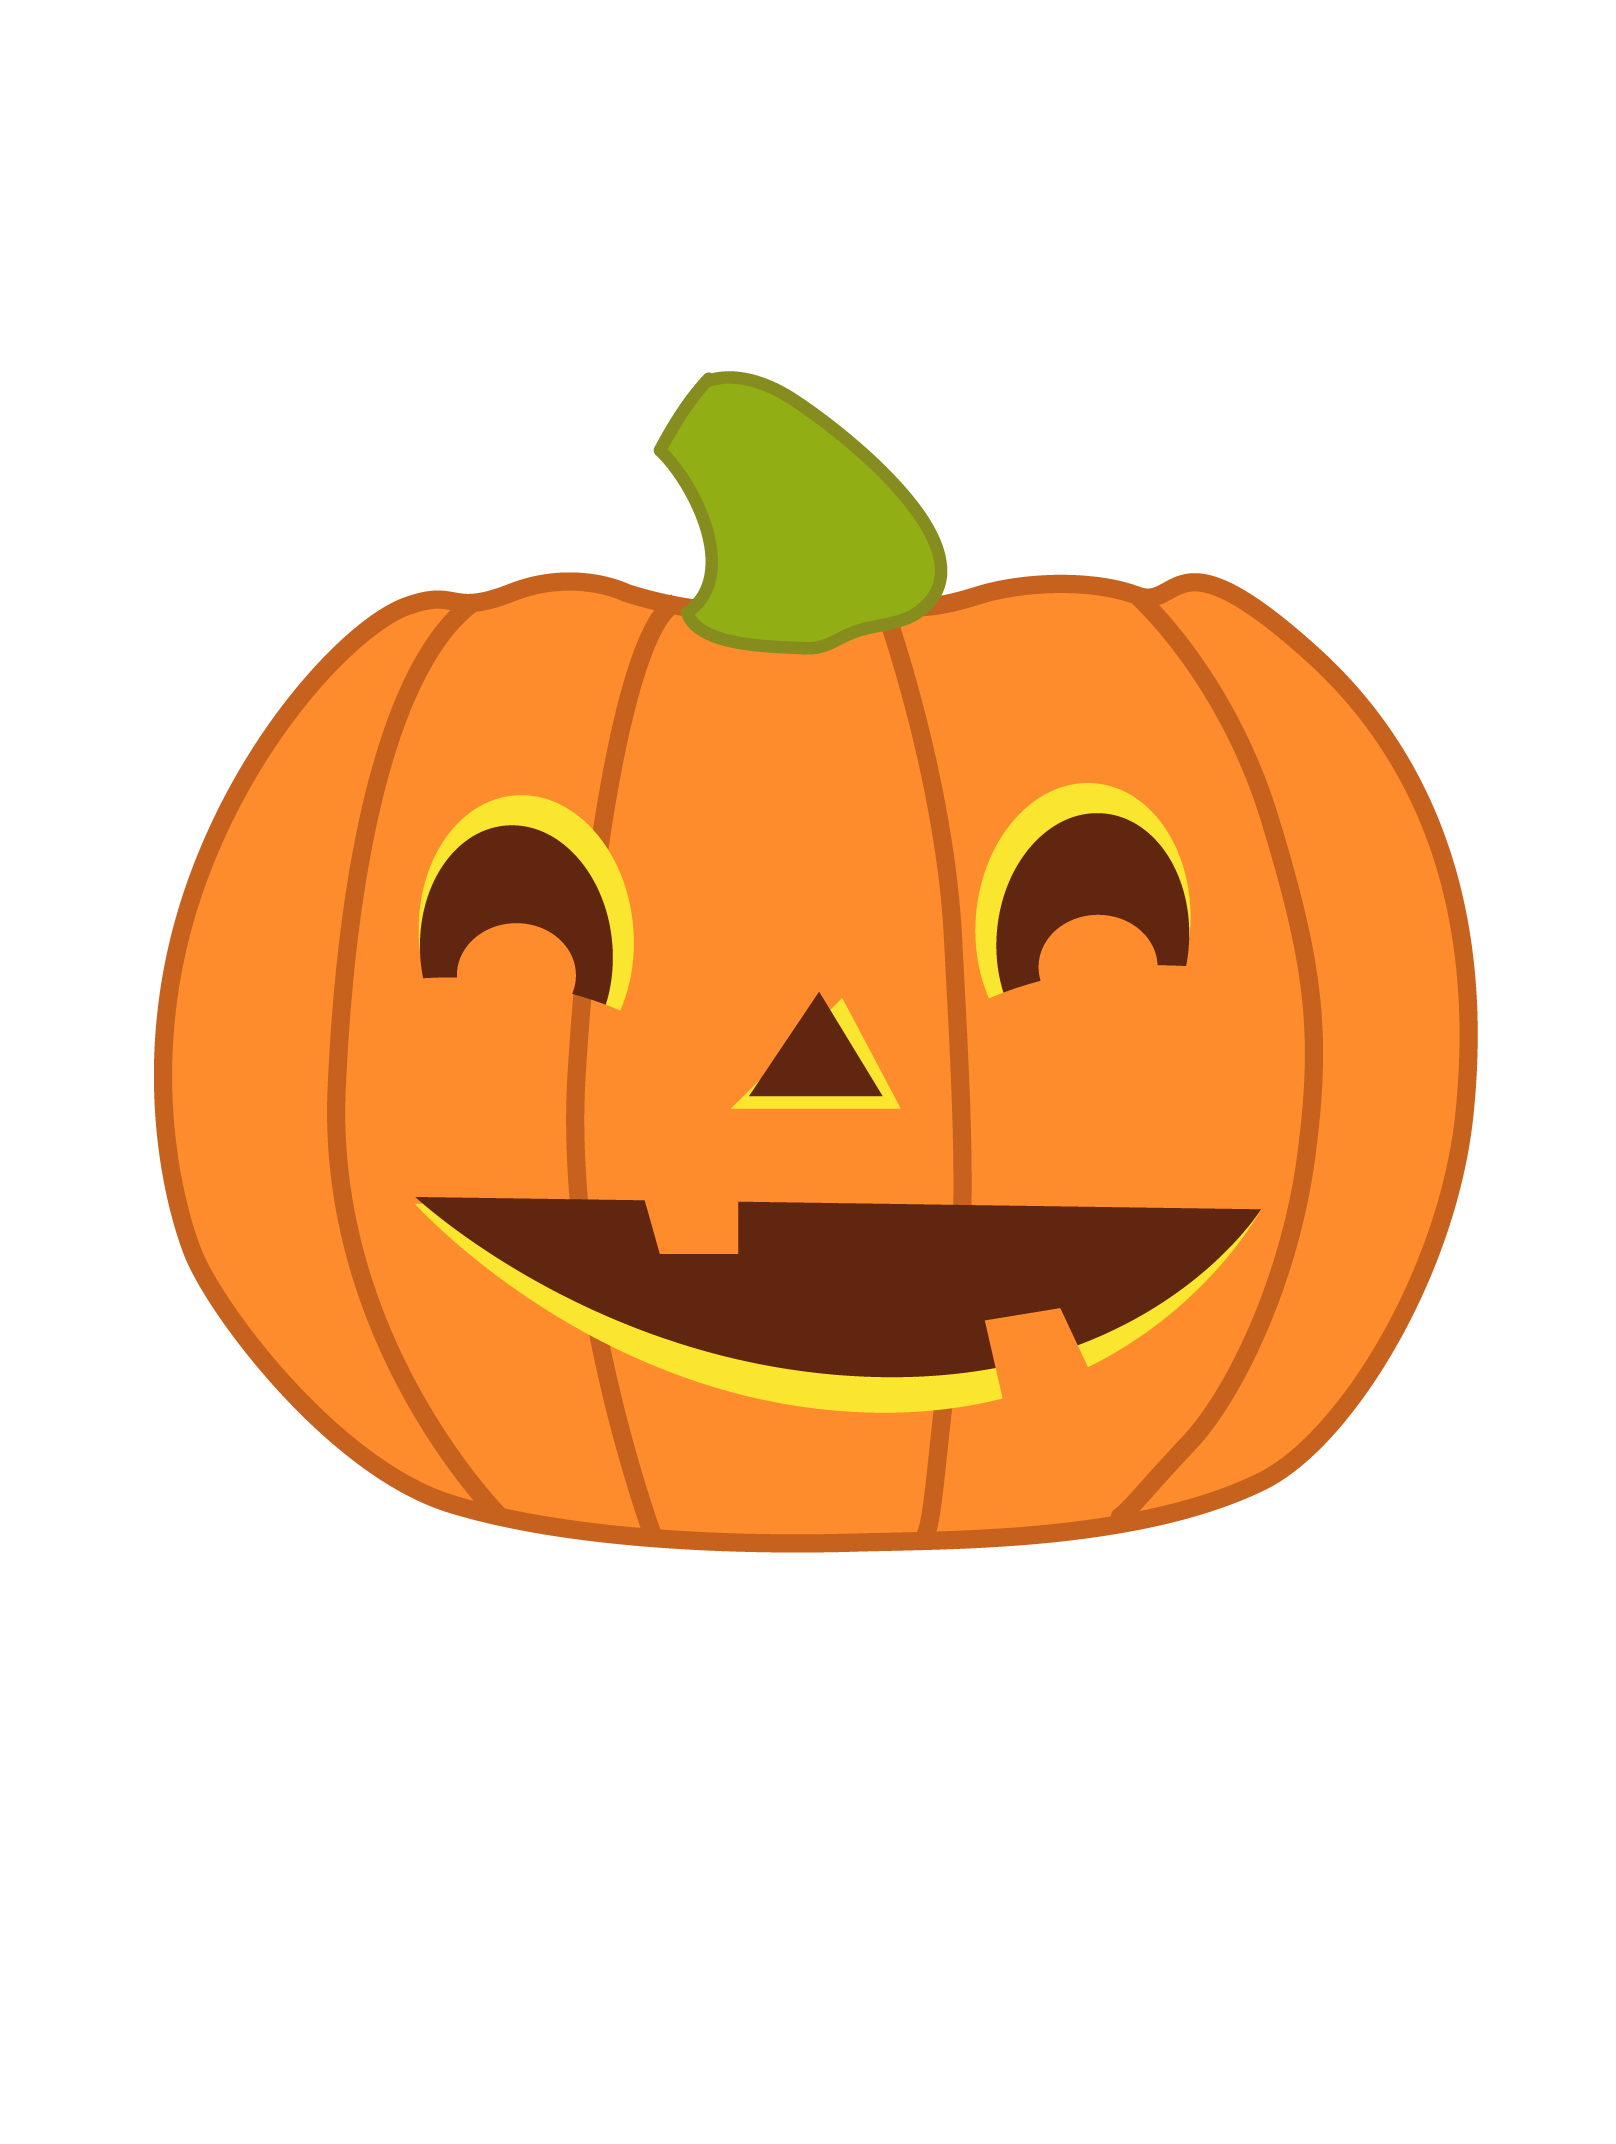 Halloween clipart cute pumpkin graphic royalty free library cute halloween pumpkin clipart - Google Search | Library-Clipart ... graphic royalty free library